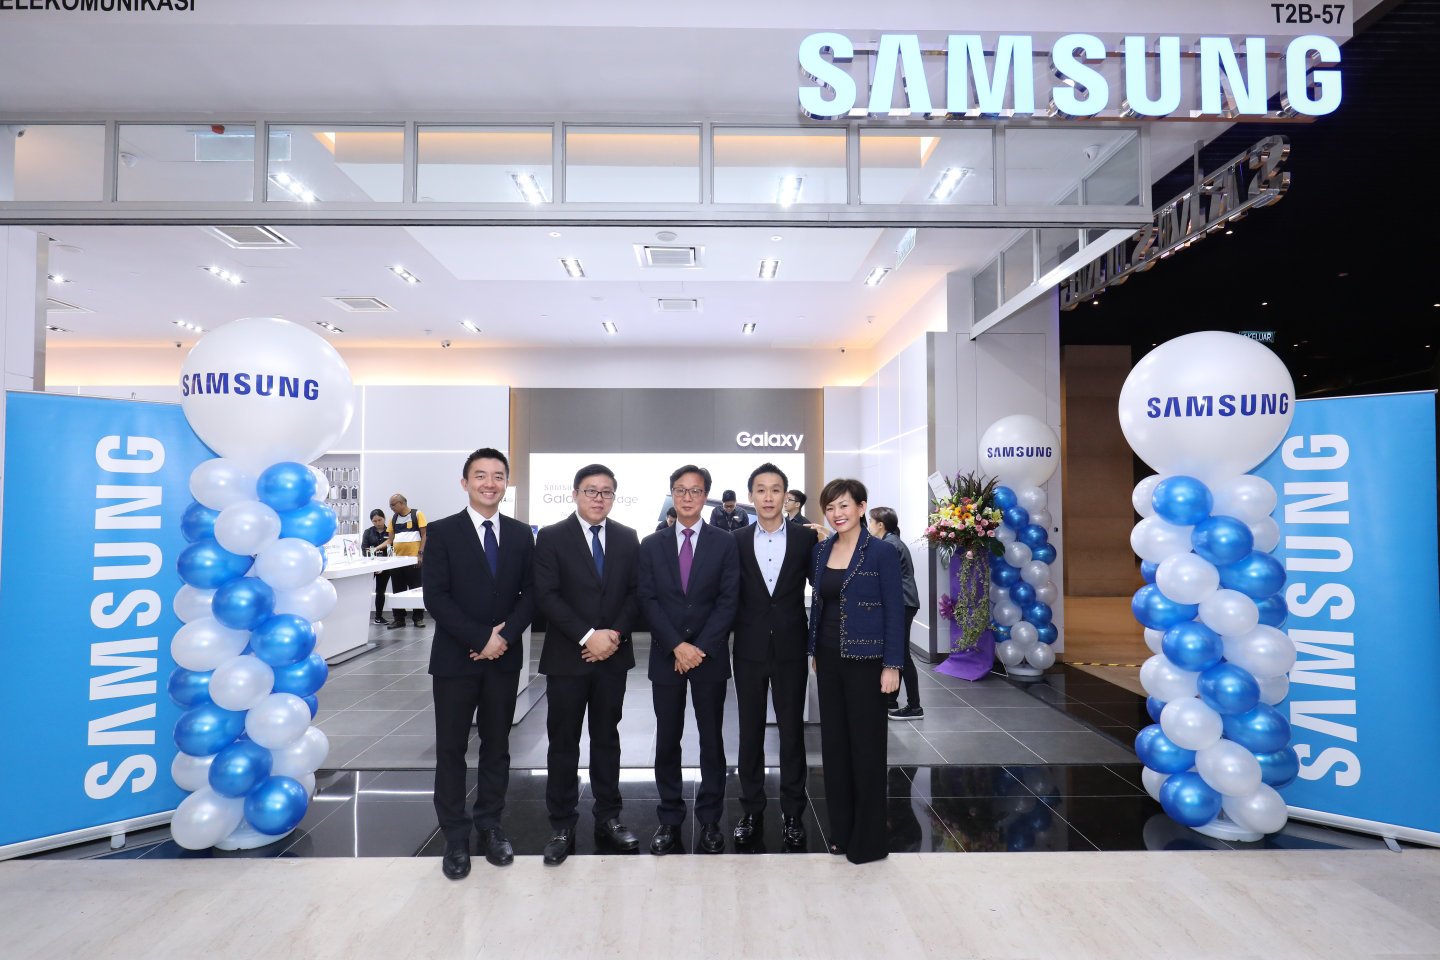 Samsung Opens First Ever Experience Store in Genting